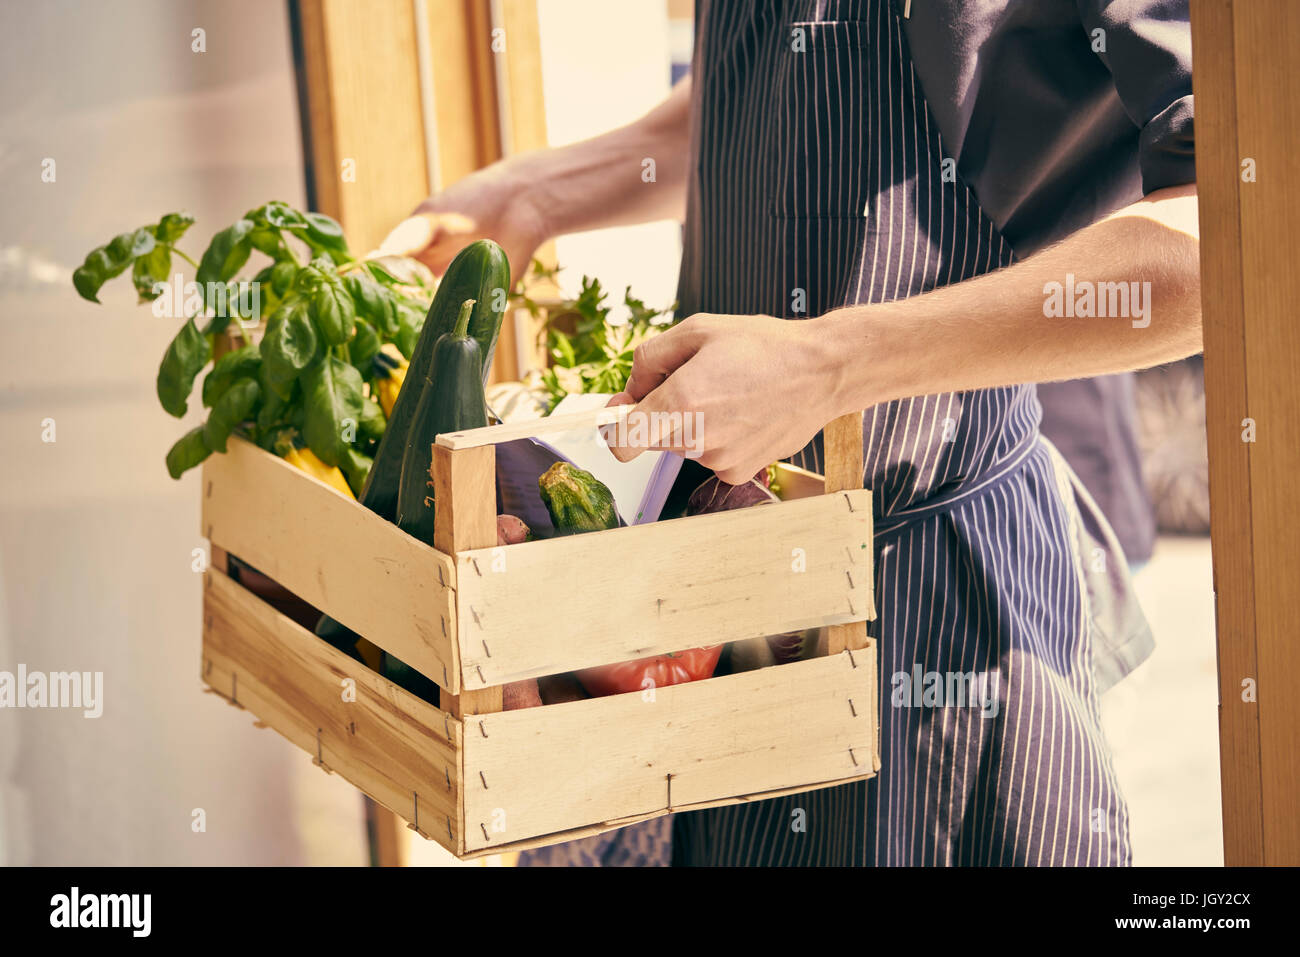 Cropped view of chef carrying crate of vegetables Stock Photo